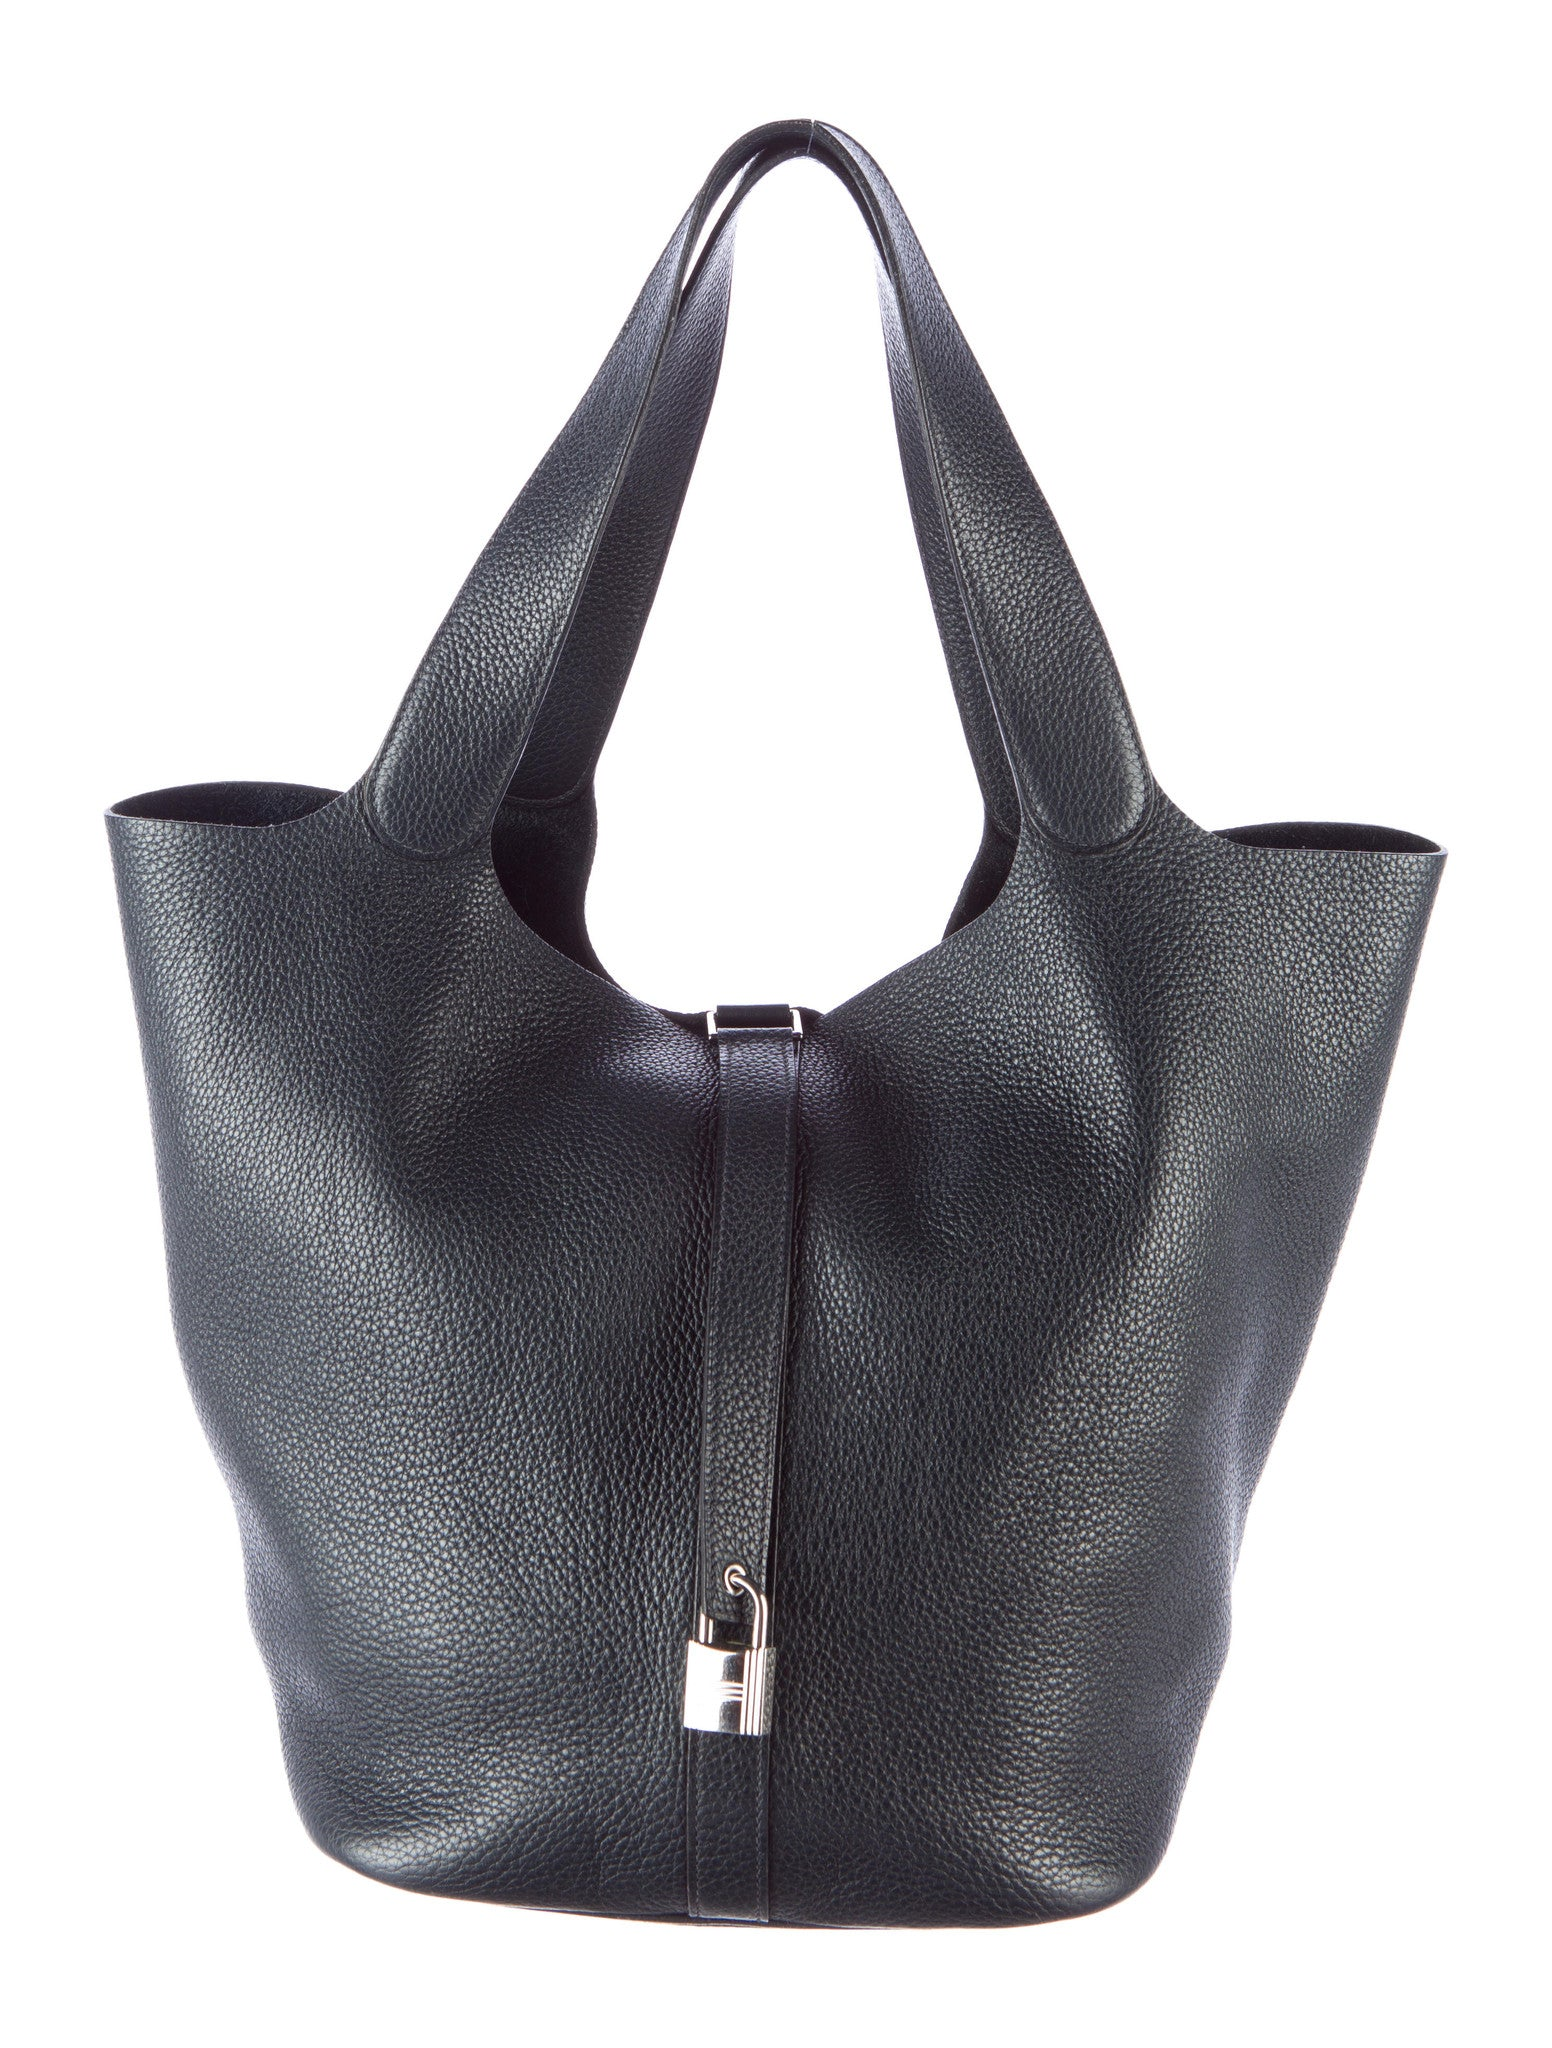 0a1db257c408 HERMES Black Picotin Lock Clemence Leather Palladium Hardware Purse  Shoulder Bag